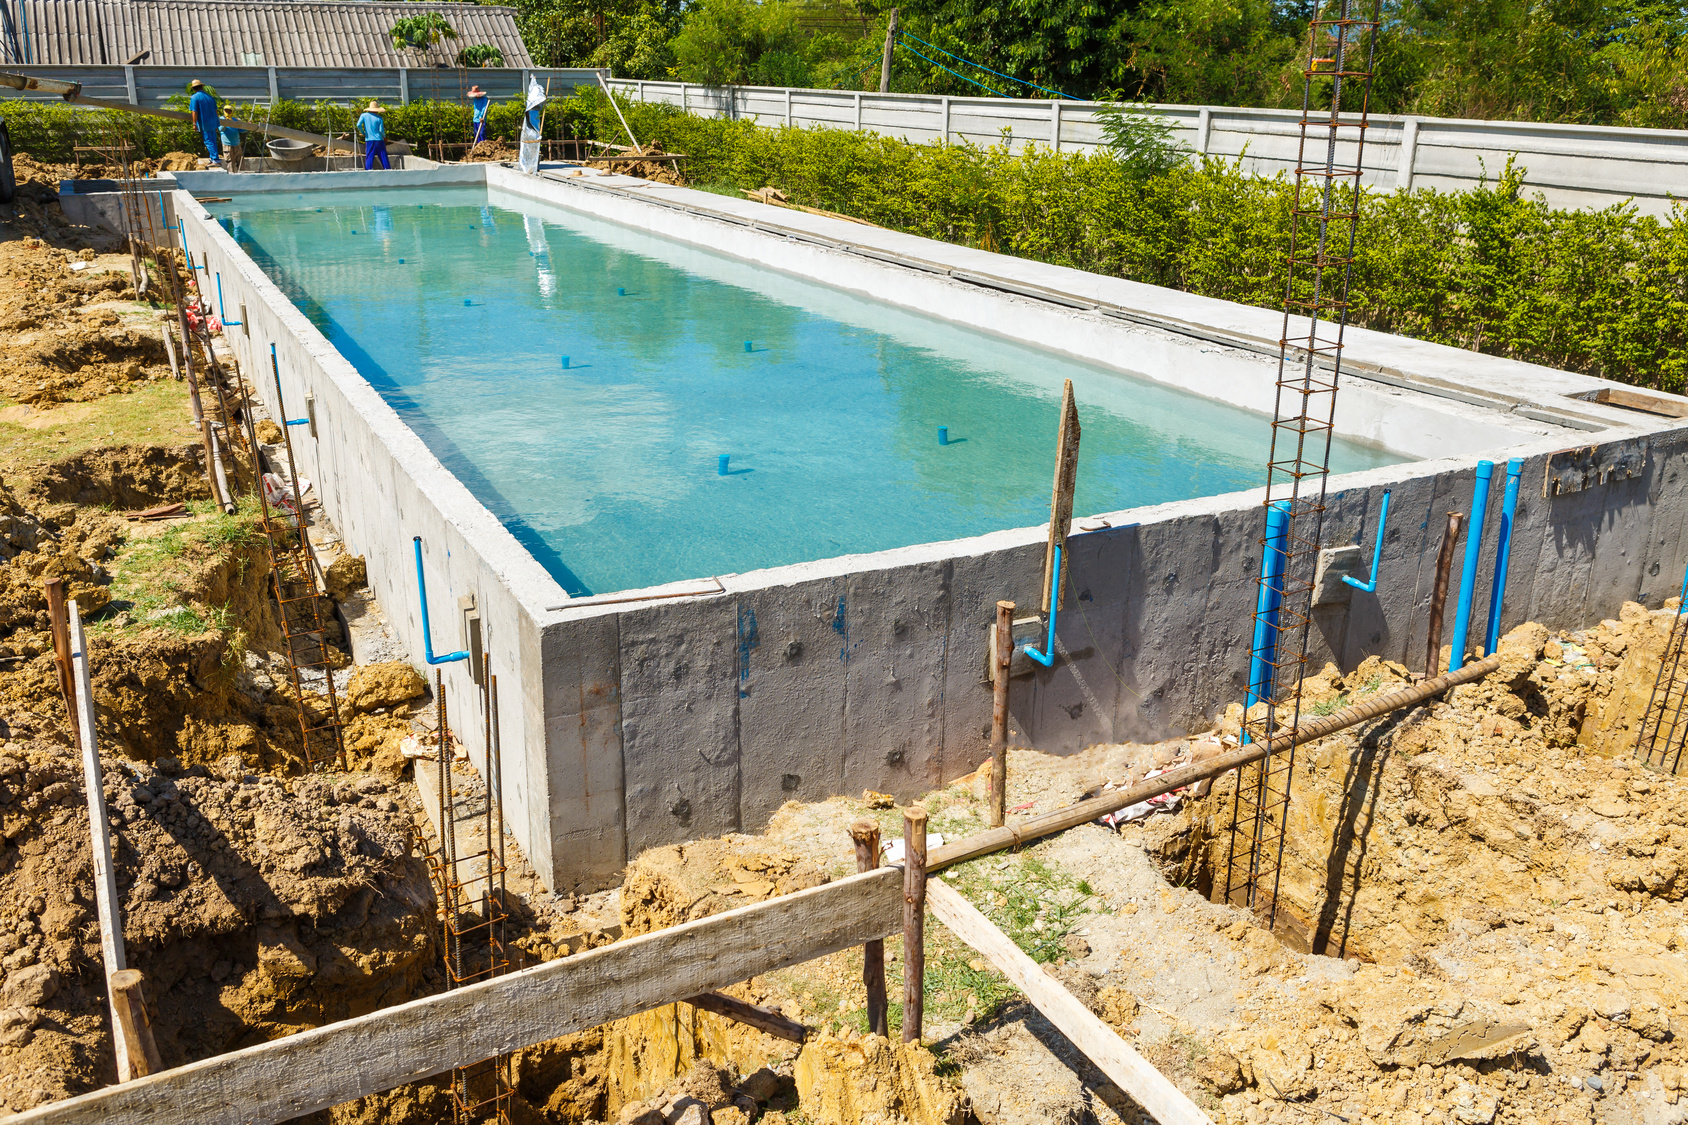 Construire une piscine b ton traditionnelle en kit for Construire sa piscine en beton